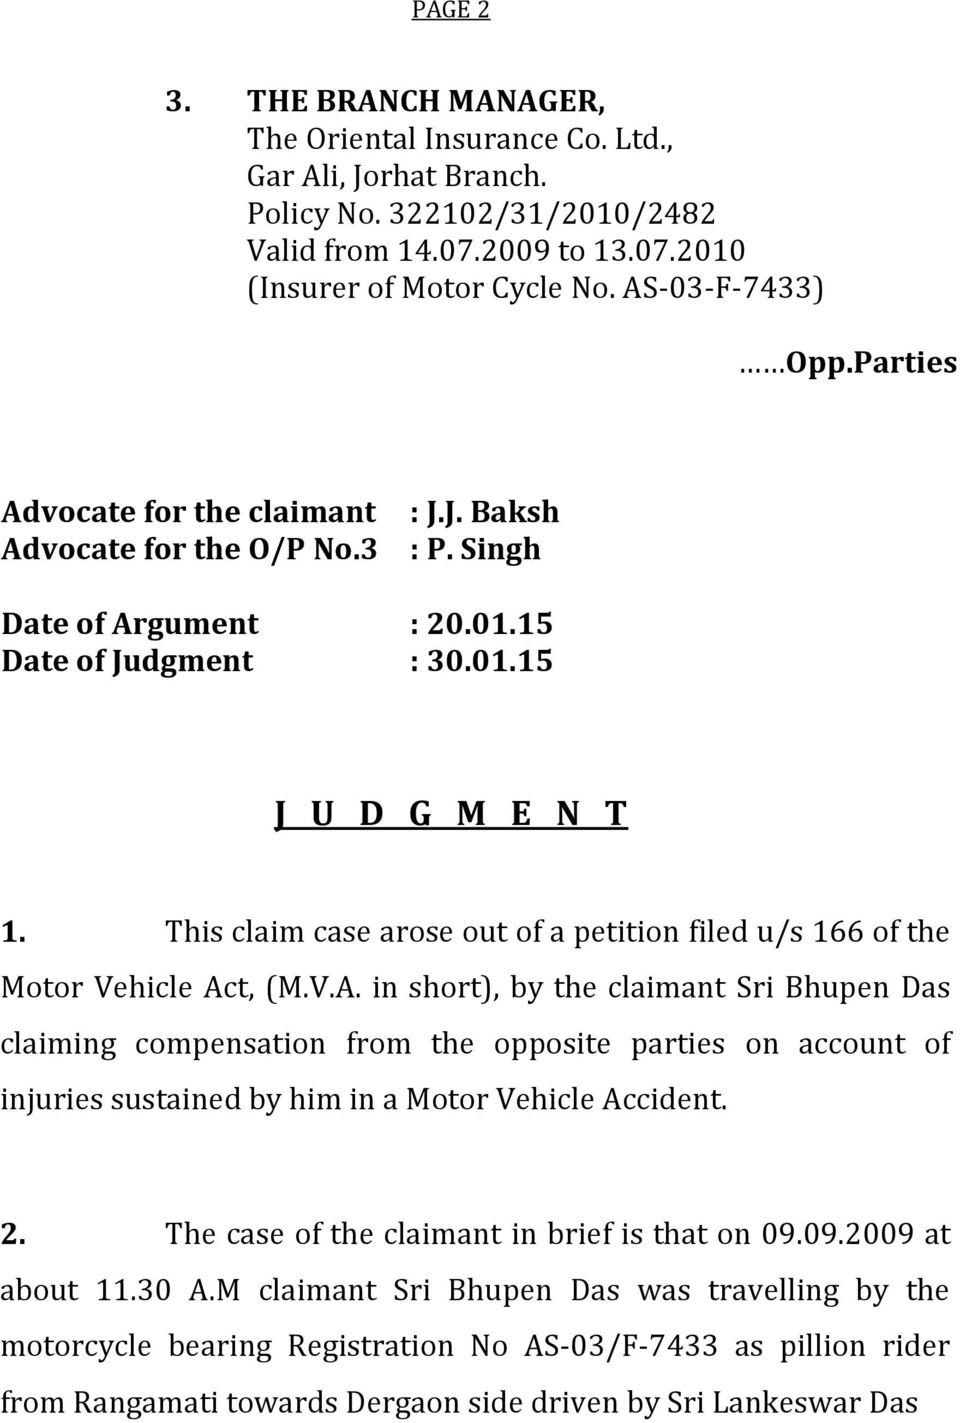 This claim case arose out of a petition filed u/s 166 of the Motor Vehicle Ac